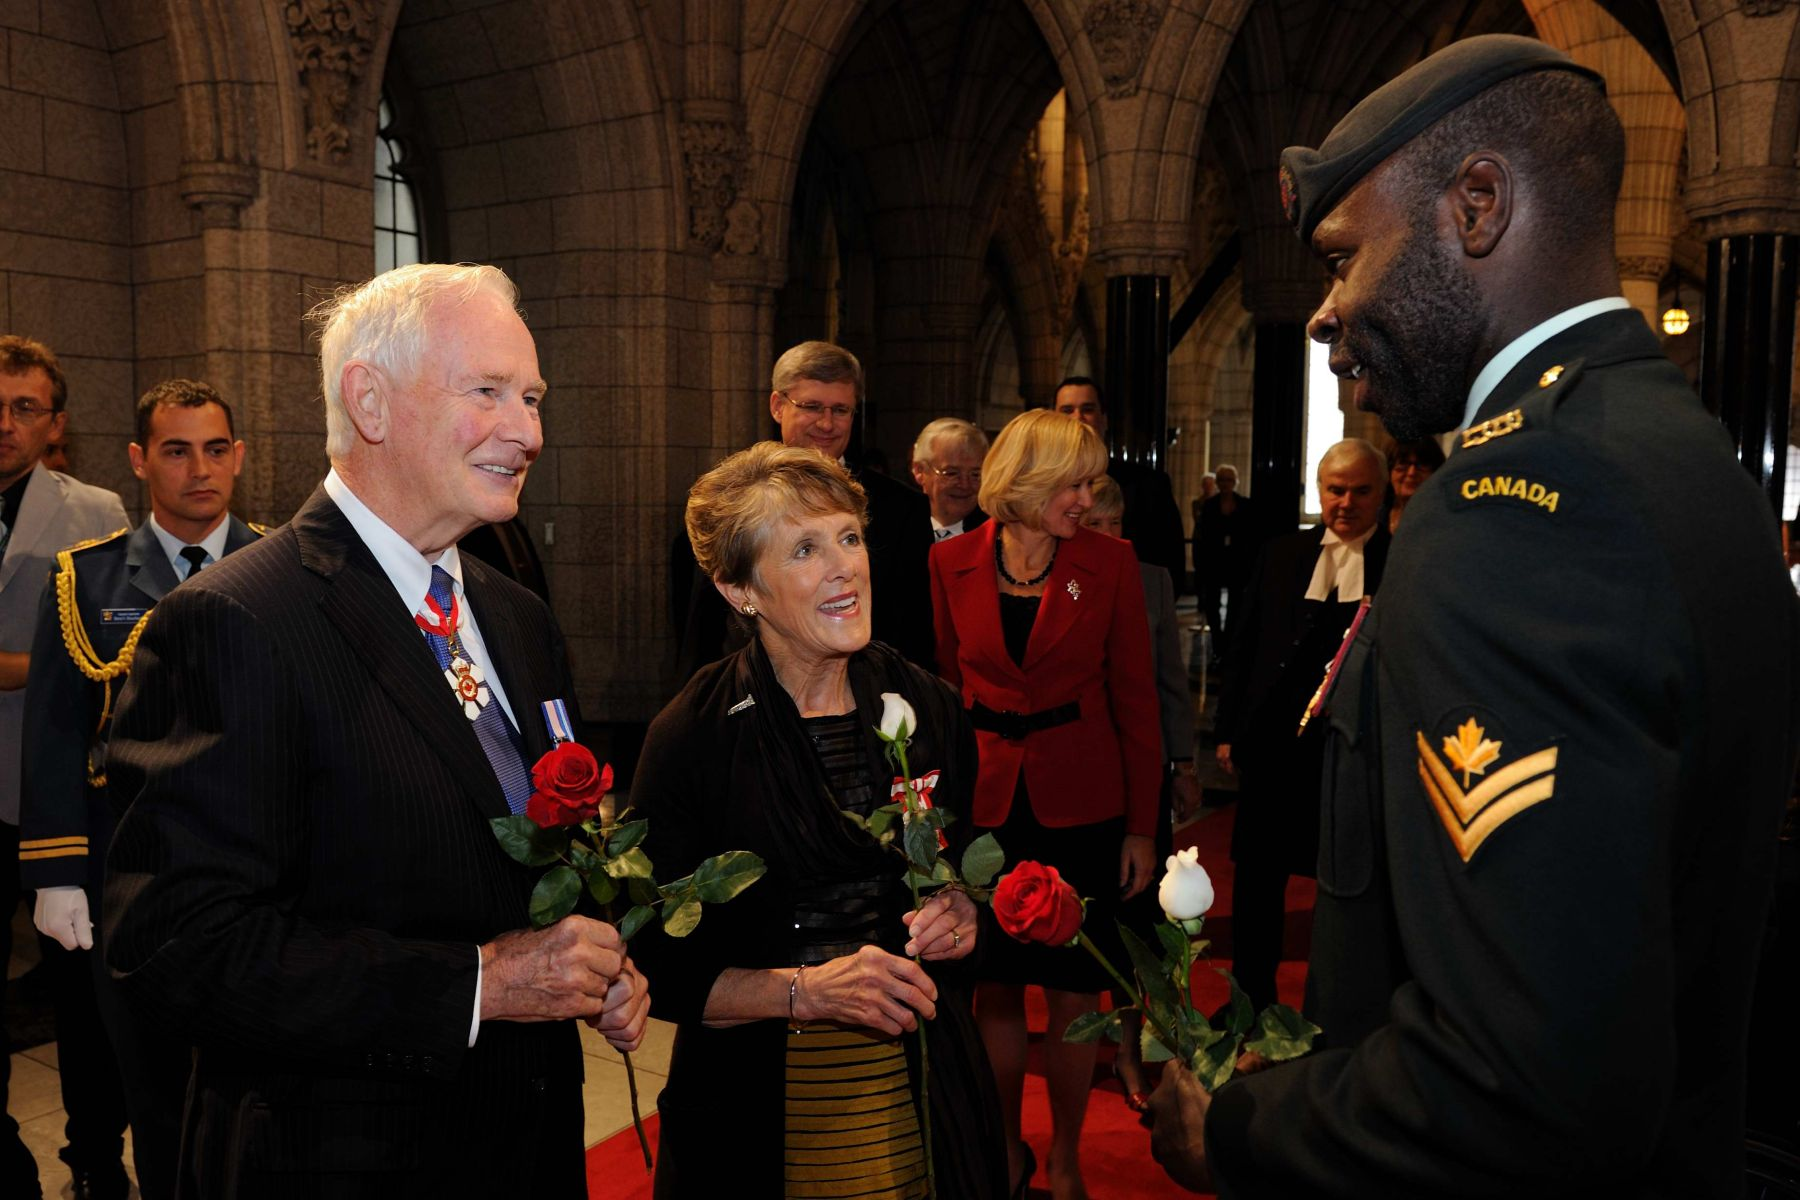 As Mr. and Mrs Johnston proceeded down the Hall of Honour of Centre Block, representatives from each province and territories presented them a flower.